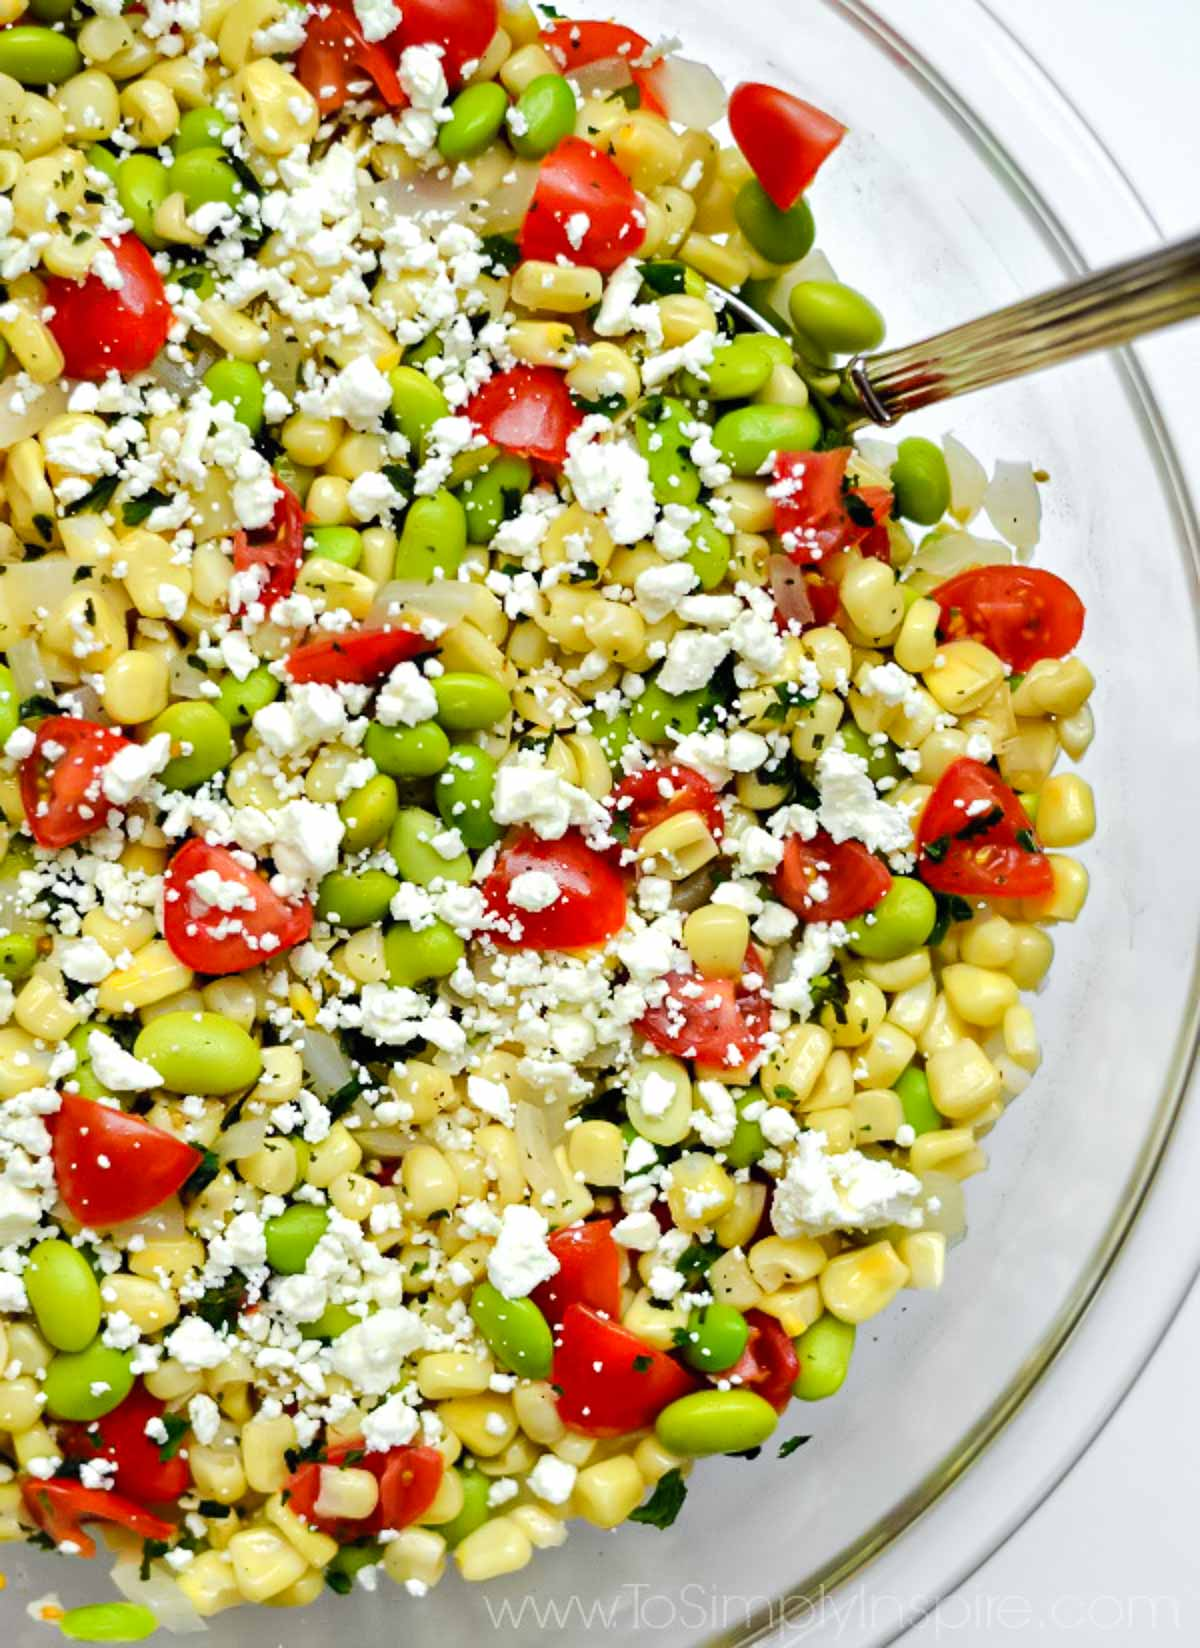 succotash salad with corn kernels, lima beans and tomatoes in a big glass bowl with a spoon